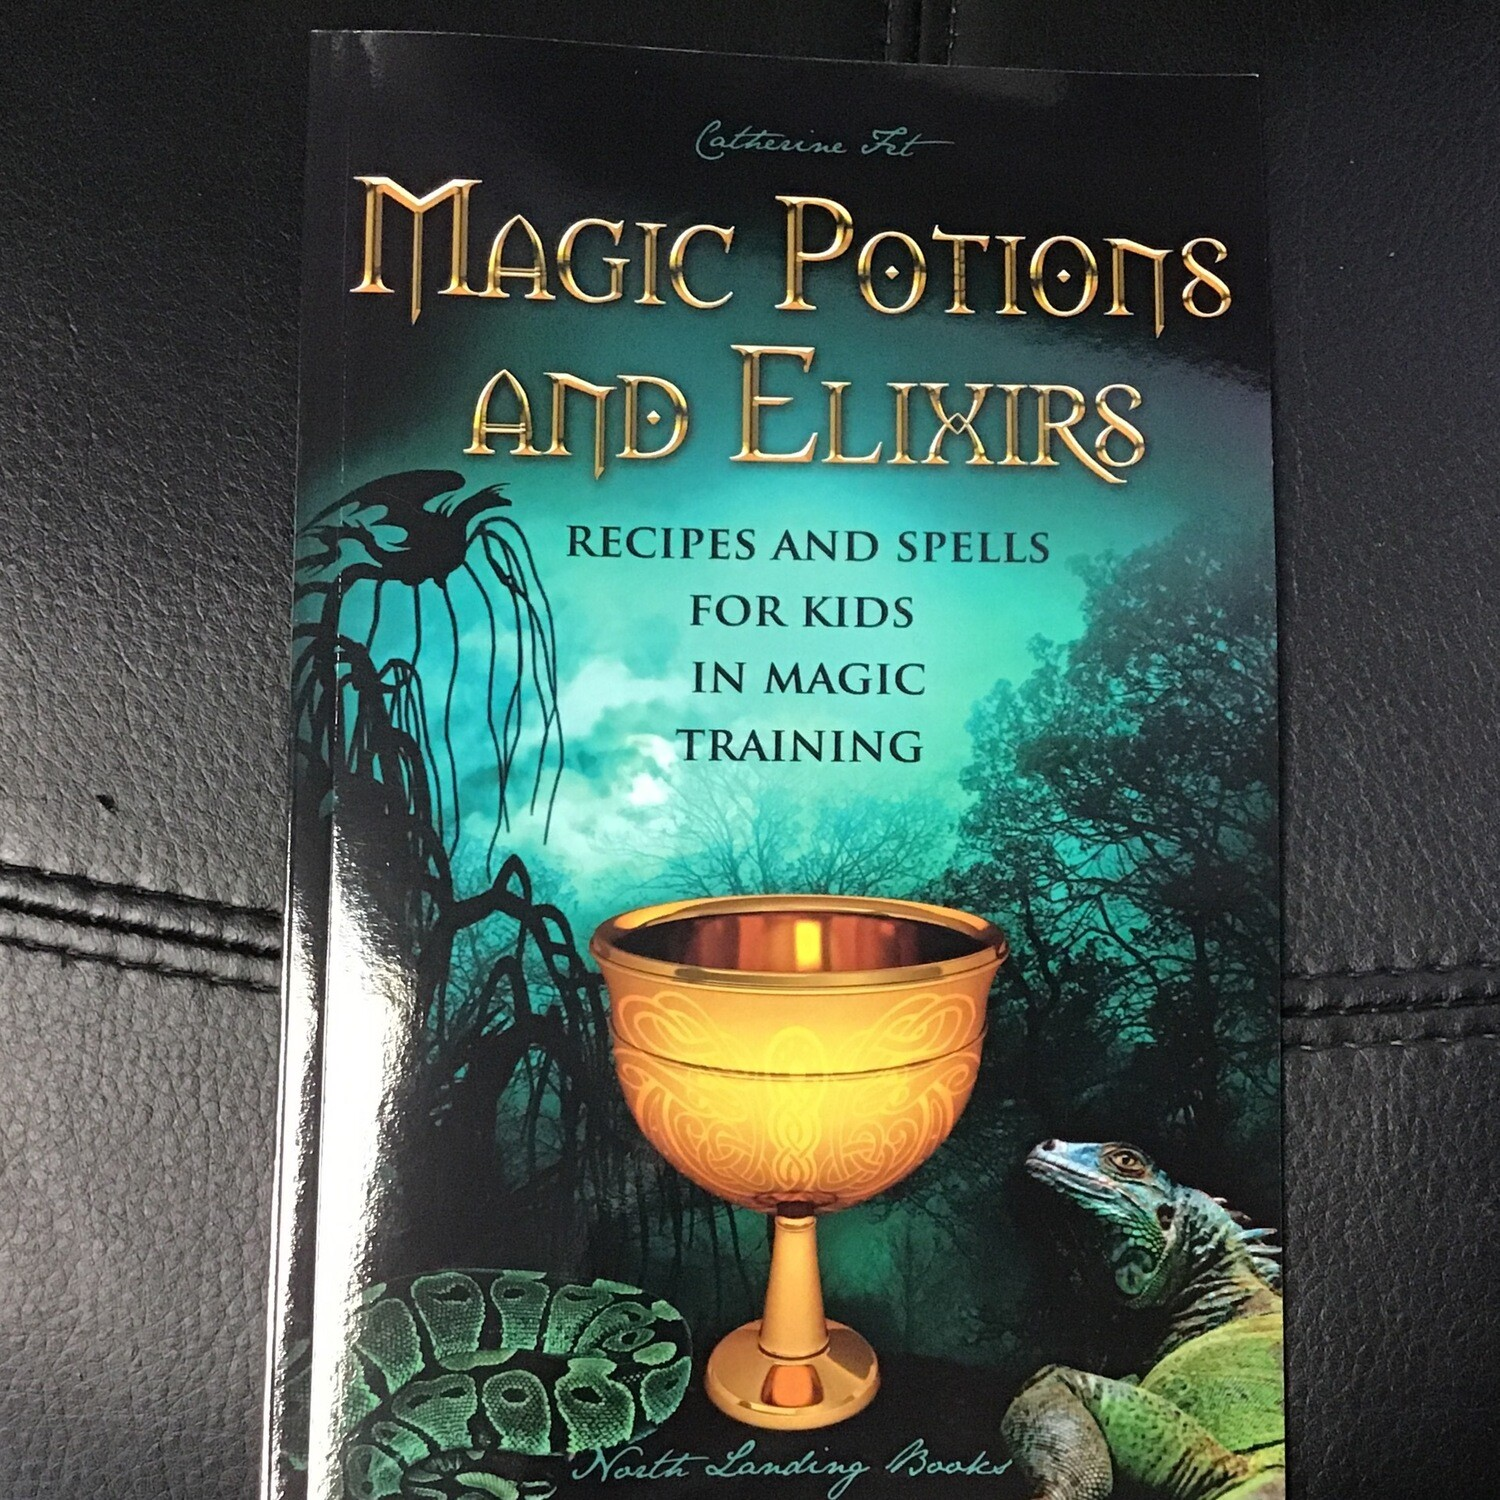 Magic Potions and Elixers Recipes and Spells For Kids in Magic Training